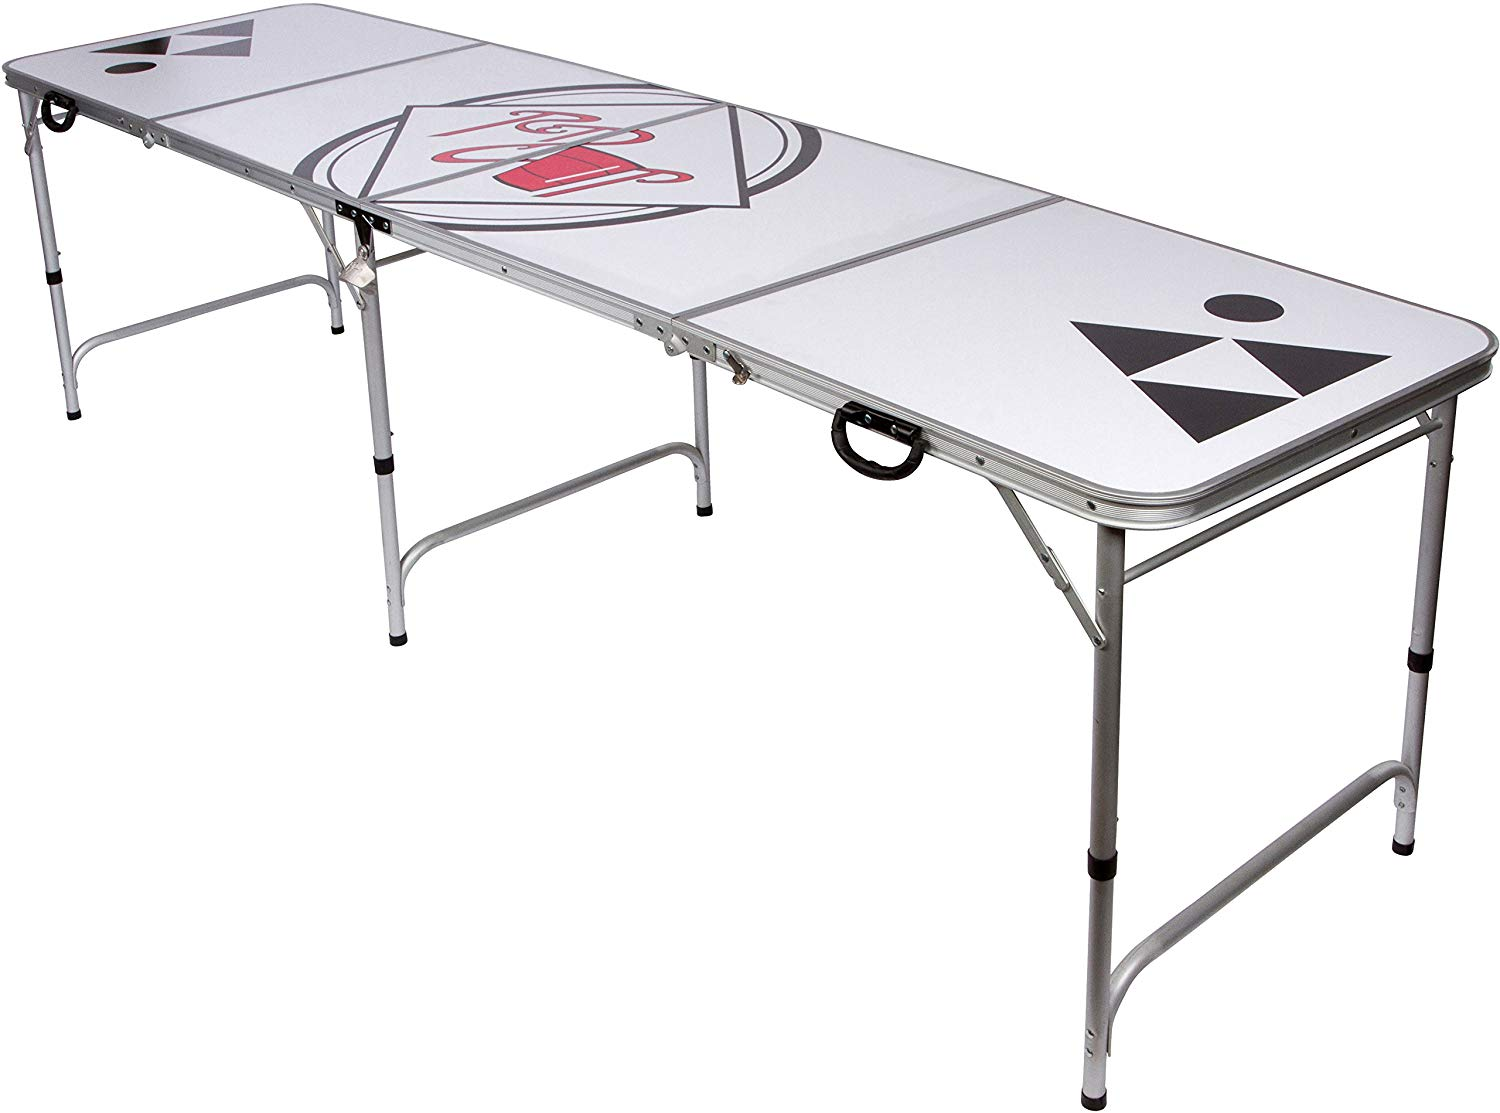 Enjoyable Cheap Beer Pong Table Portable Find Beer Pong Table Download Free Architecture Designs Scobabritishbridgeorg